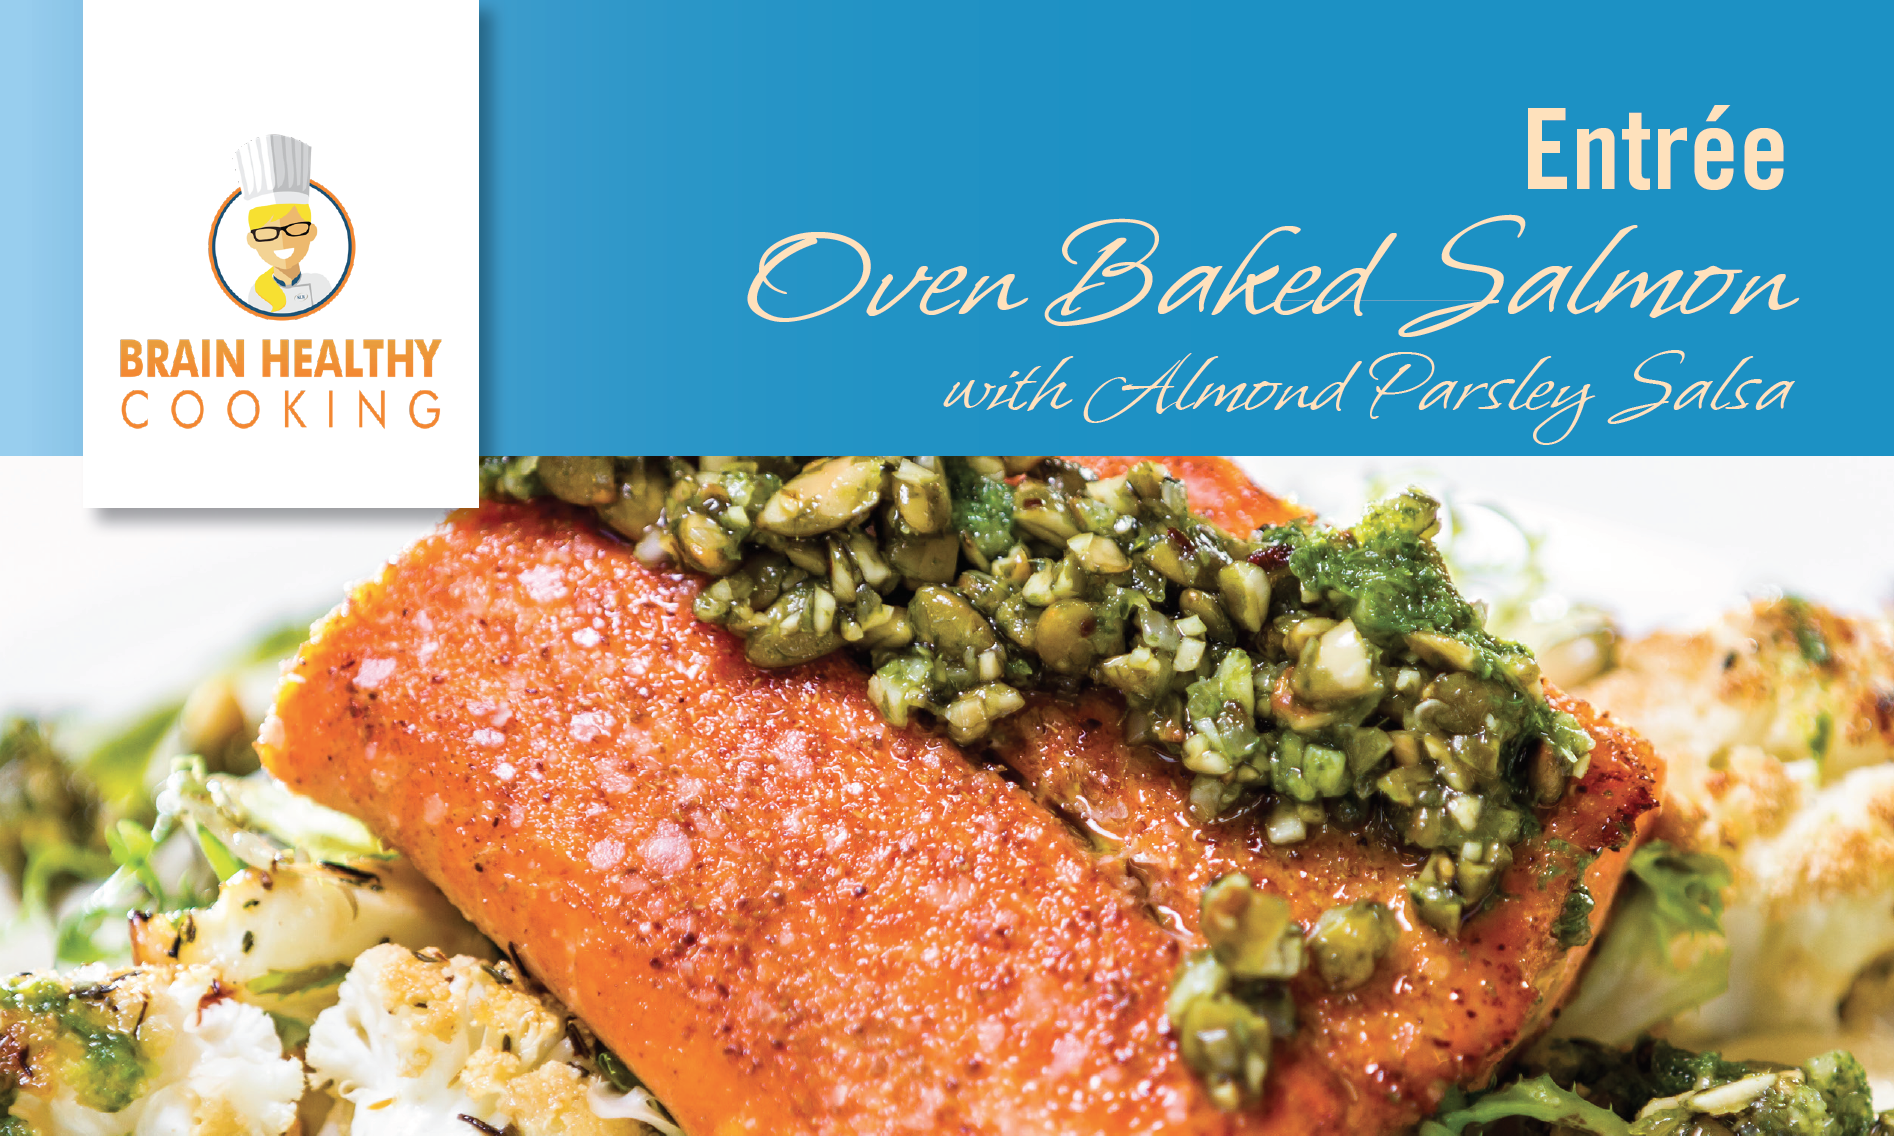 Oven Baked Salmon with Almond Parsley Salsa recipe card